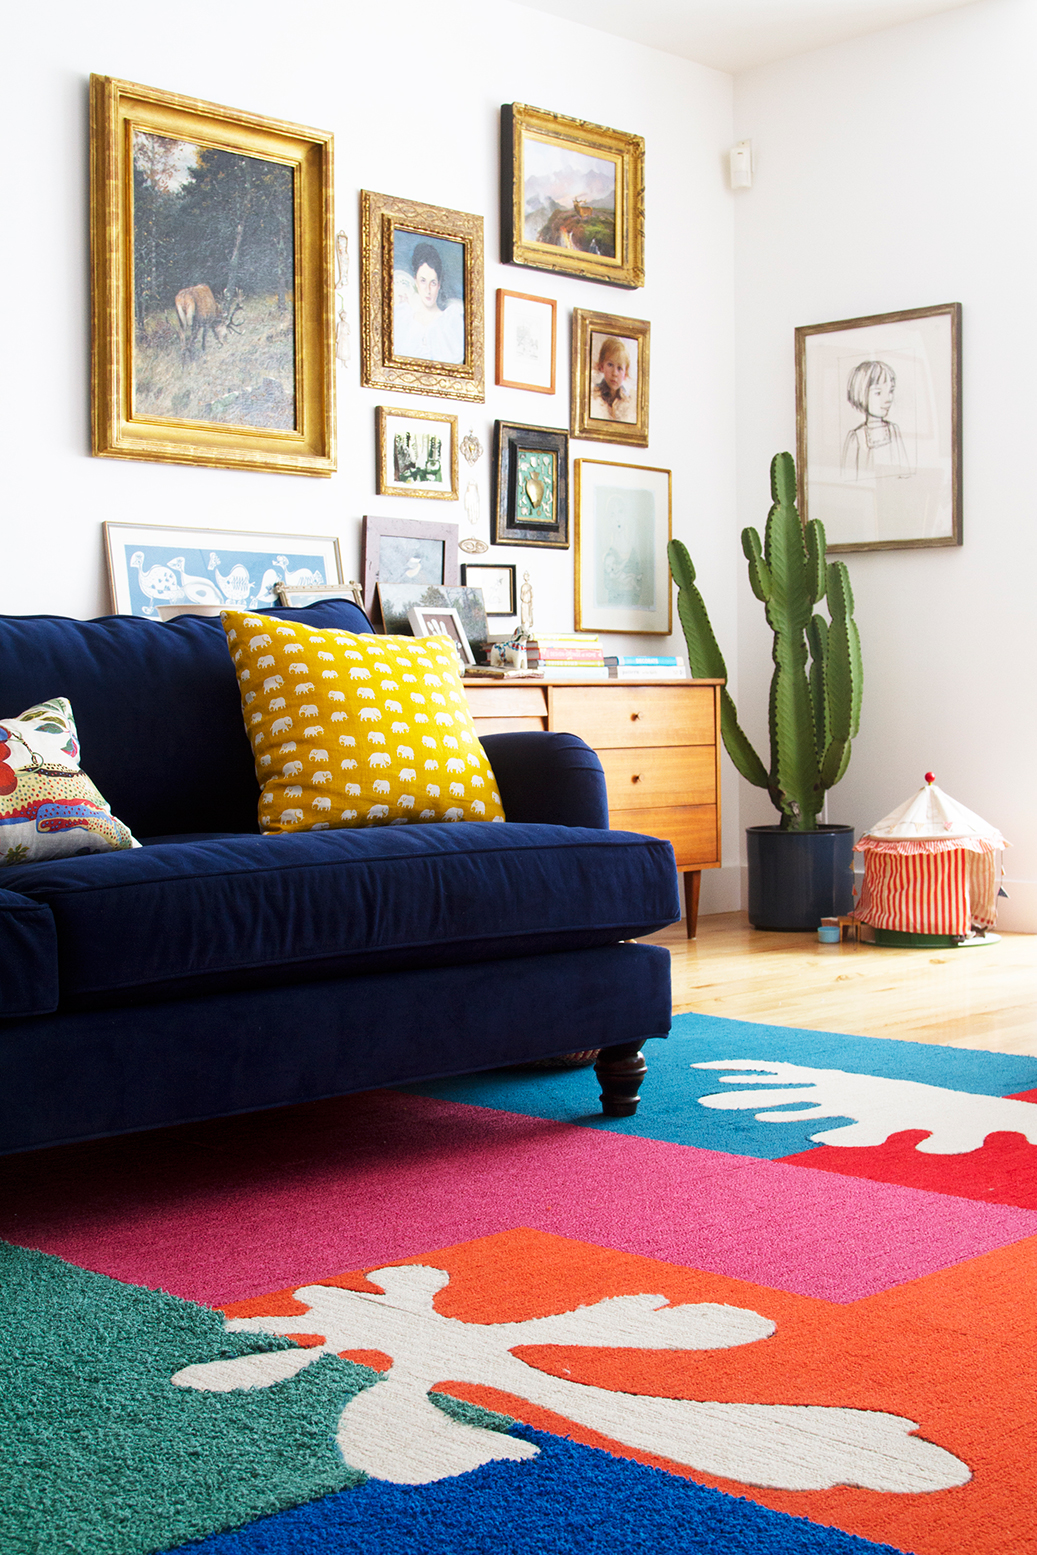 DIY Matisse-inspired cut out rug